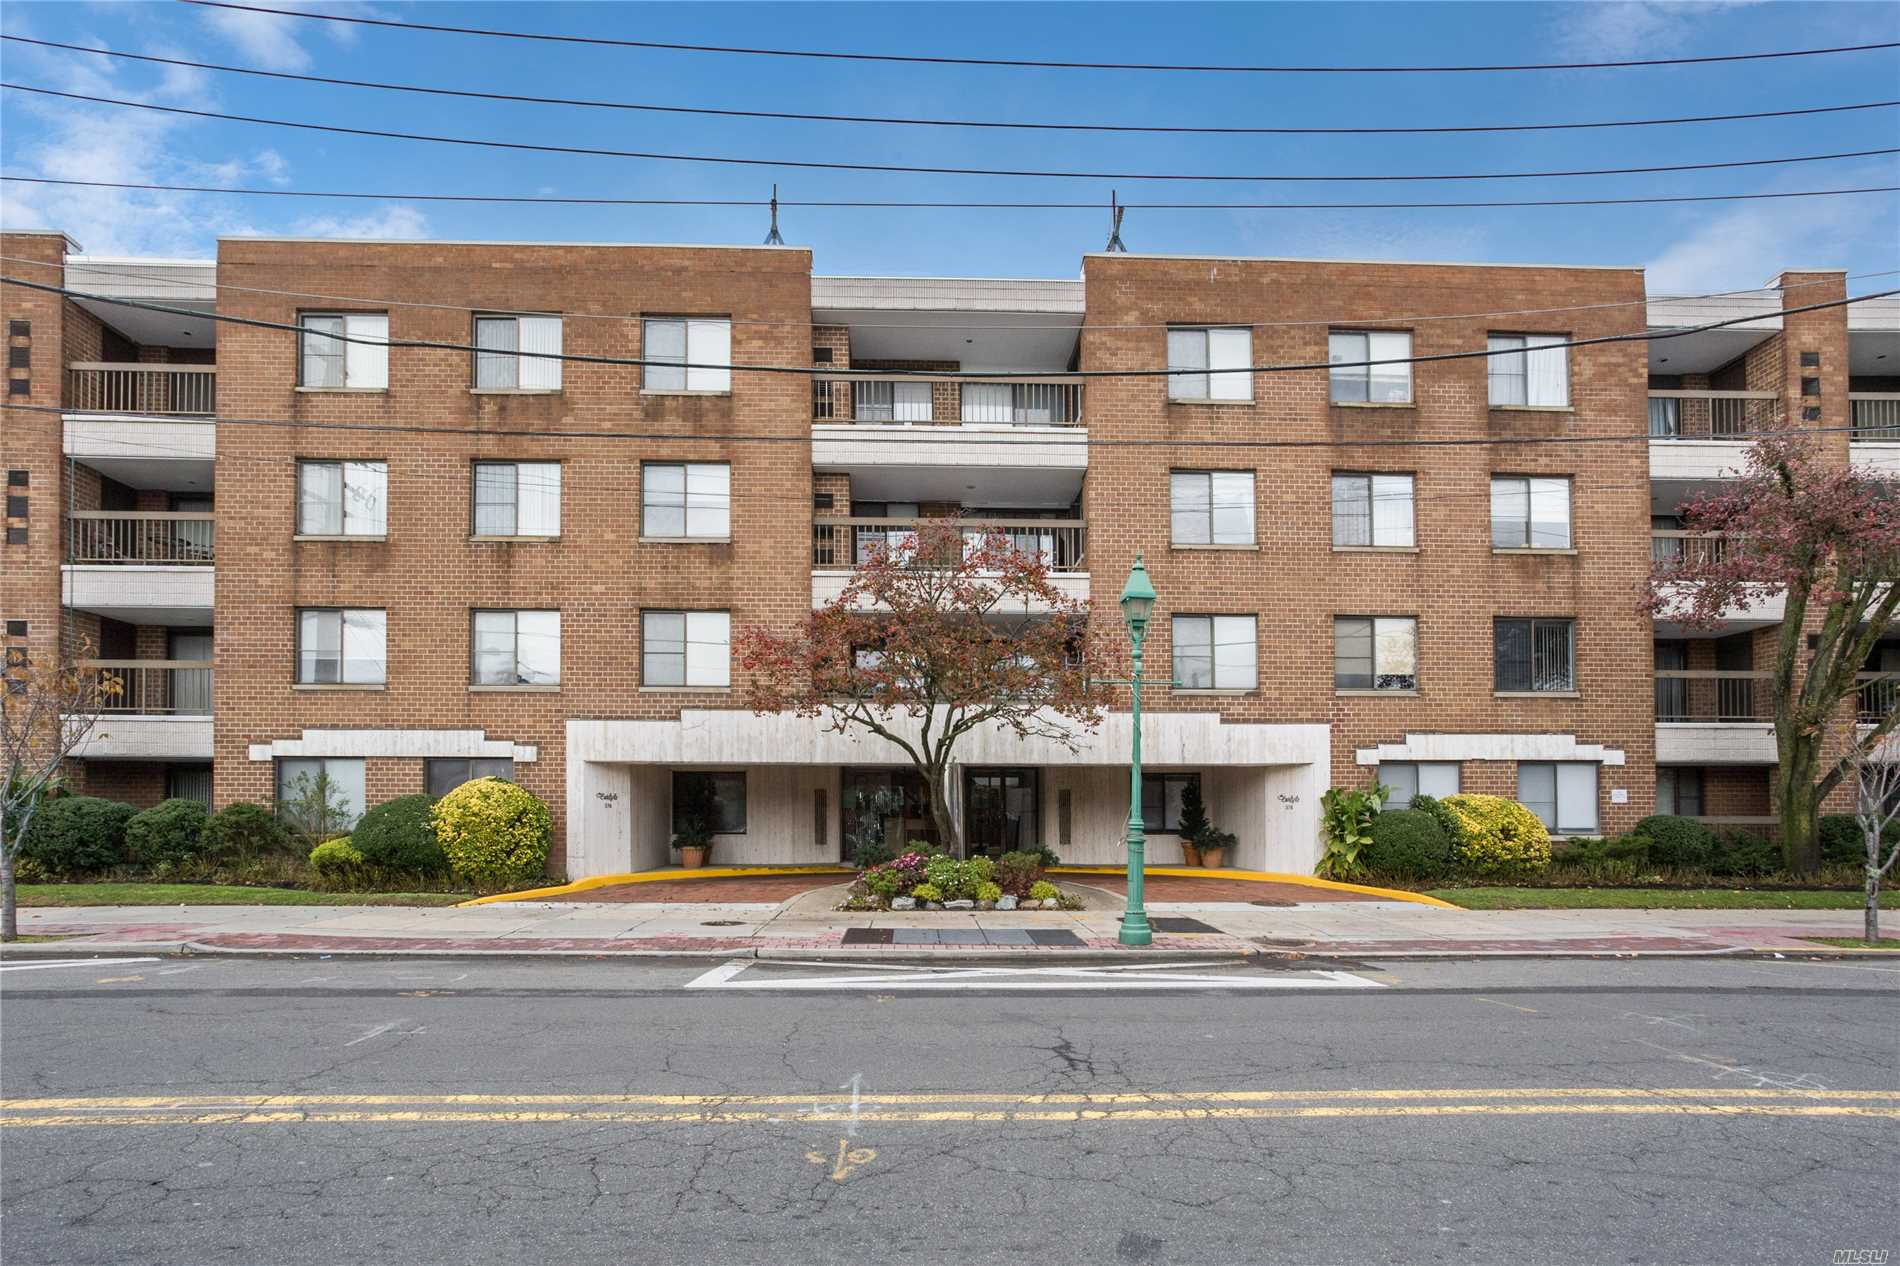 Mve Right In To This Sun Filled Aprtmnt. Quiet Oversized Terrce Faces The Rear. Abundance Of Closets. Open Plan Kitchen. Excptionlly Well Maintained. Luxury Bldg, With Sky Lit Atrium, 24Hr Drman And Livein Super. Drct Acss To 2 U/Ground Secure Pkng Spots. Wshr&Dryer In Aptmnt. Social Rm And Gym For Use By All Tenants. Close To Hses Of Wrshp, Trasptn, Dining, Shopping Etc.